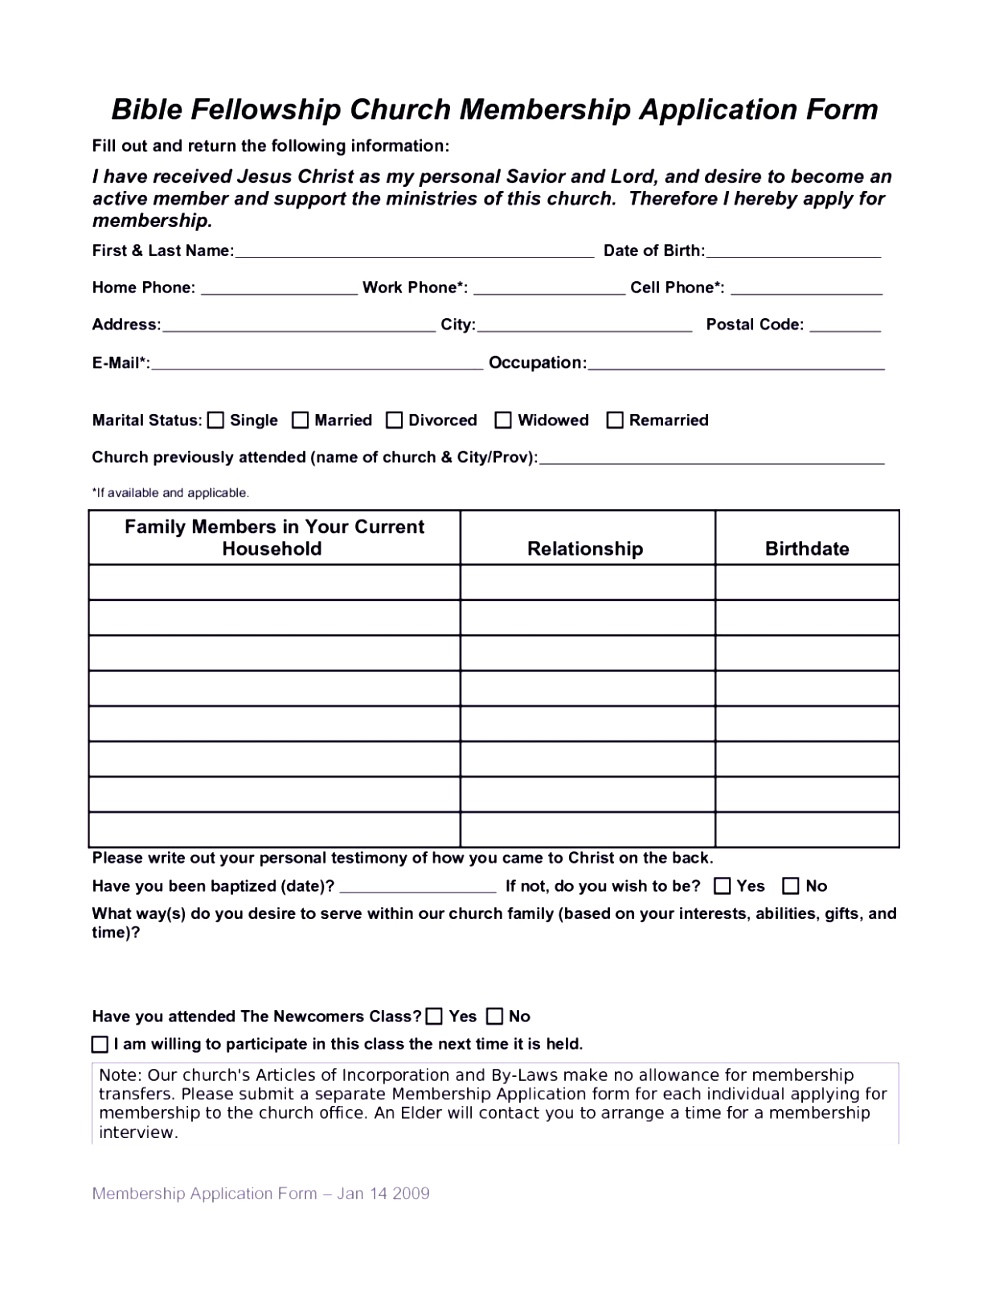 Membership form Template.doc 7 social Club Membership Application form Template Ioyao